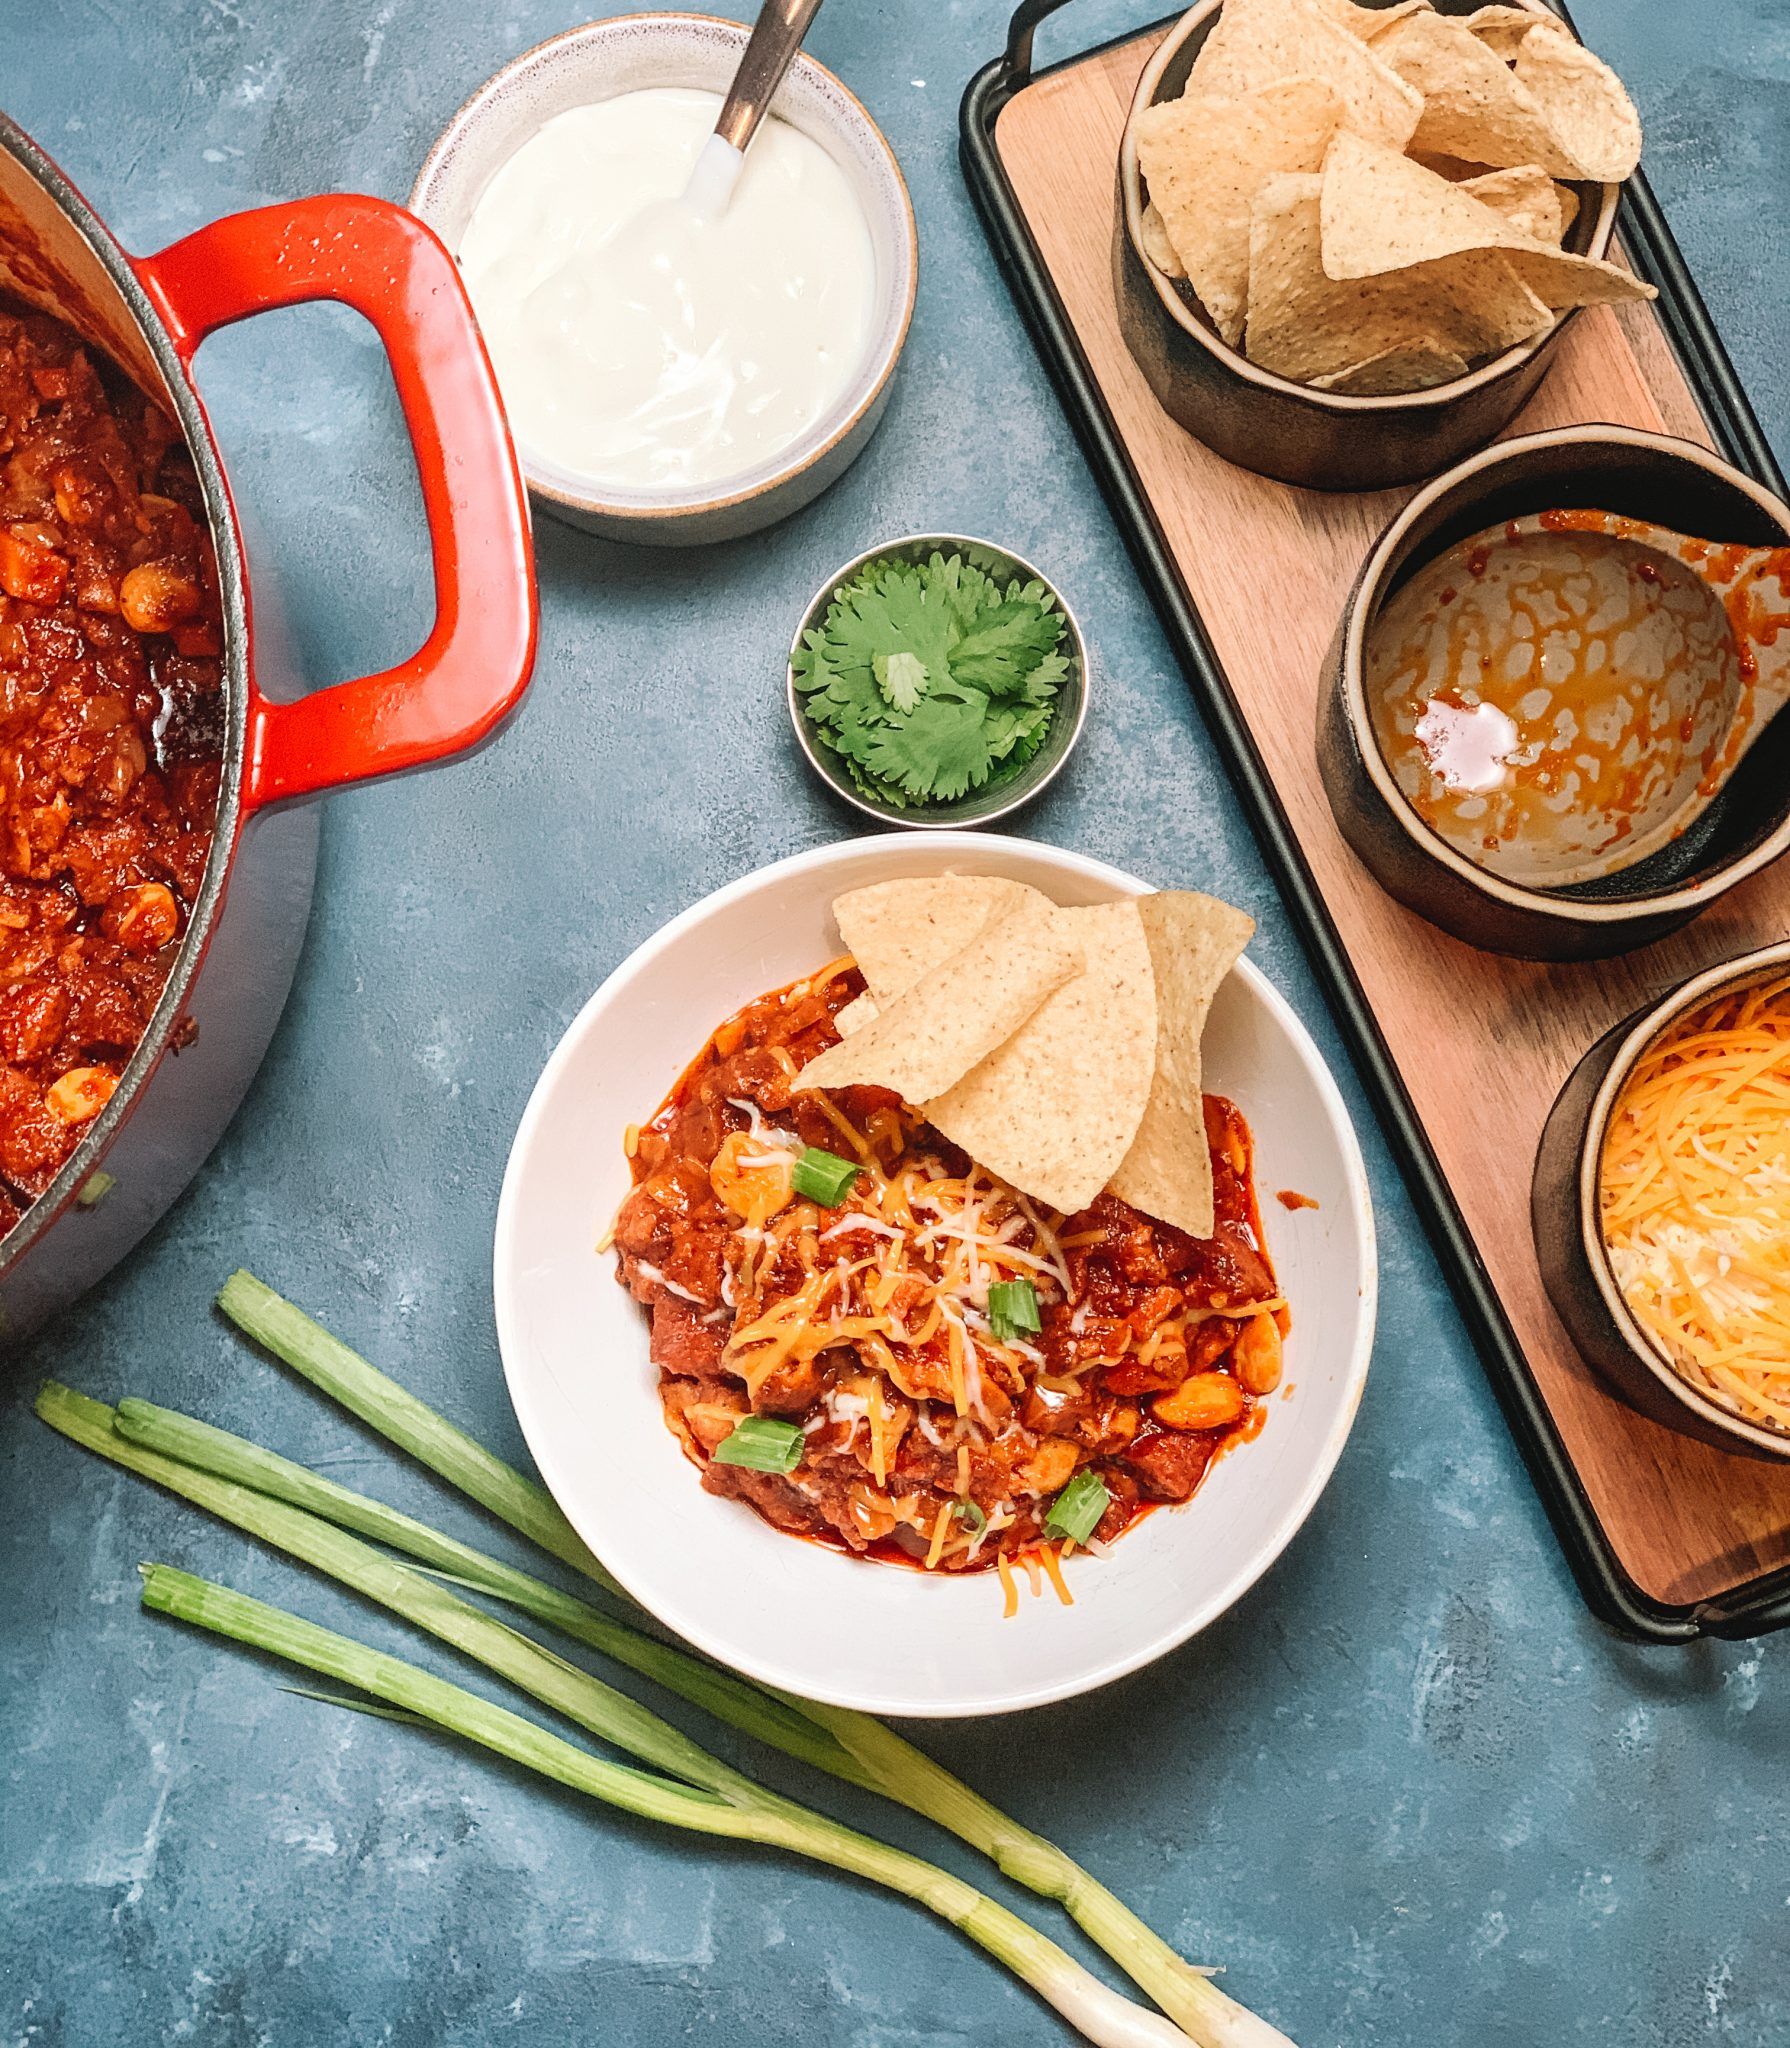 Ground Beef & Sausage Chili recipe | An easy and comforting bowl of chili, perfect for big groups, low carb, keto friendly and great for game day! | mincerepublic.com